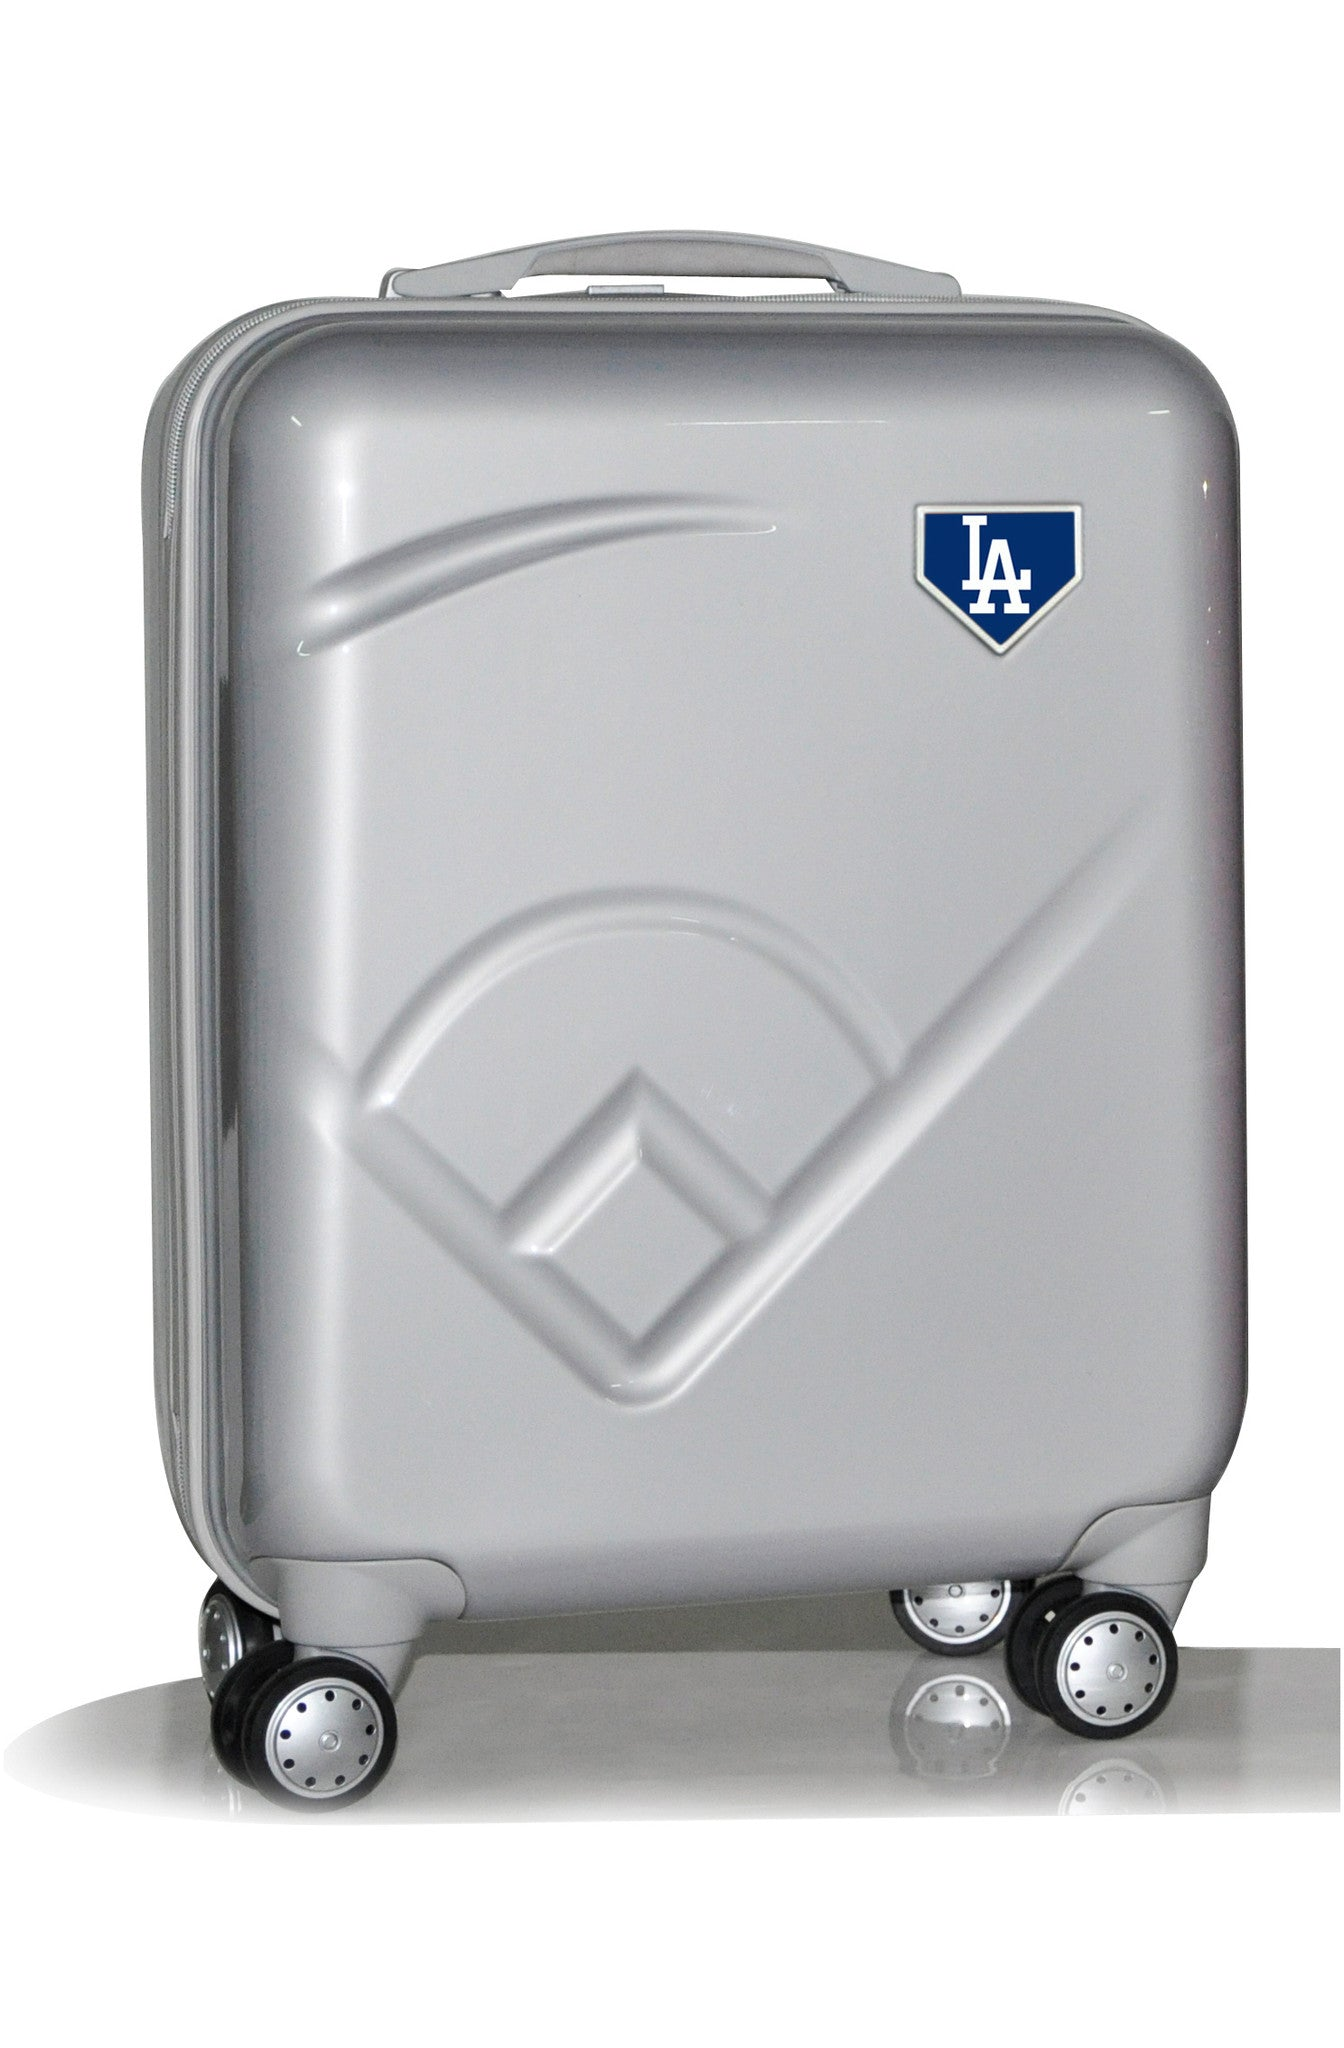 "Los Angeles Dodgers, 19"" Premium Molded Luggage by Kaybull #LAD-19PCF-IFD - OBM Distribution, Inc."